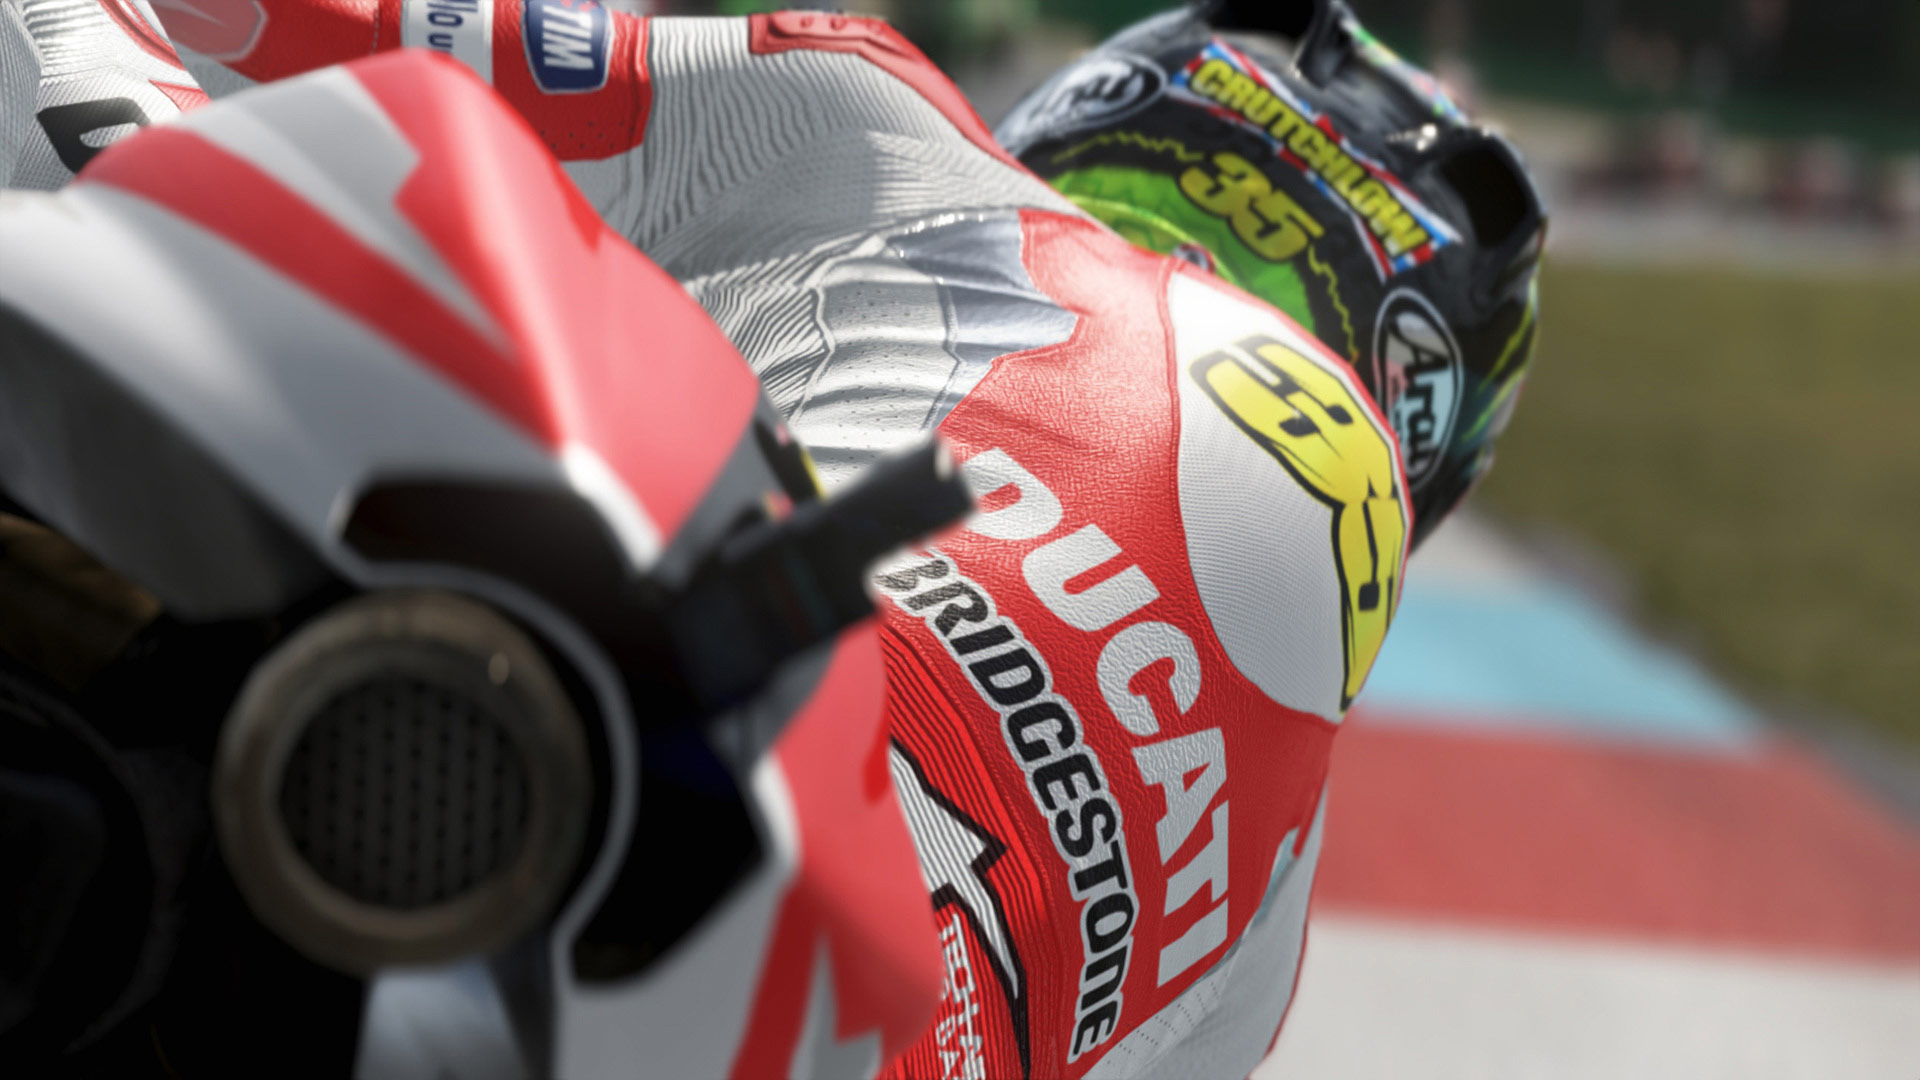 Motogp 2014 Ps4 Split Screen | MotoGP 2017 Info, Video, Points Table